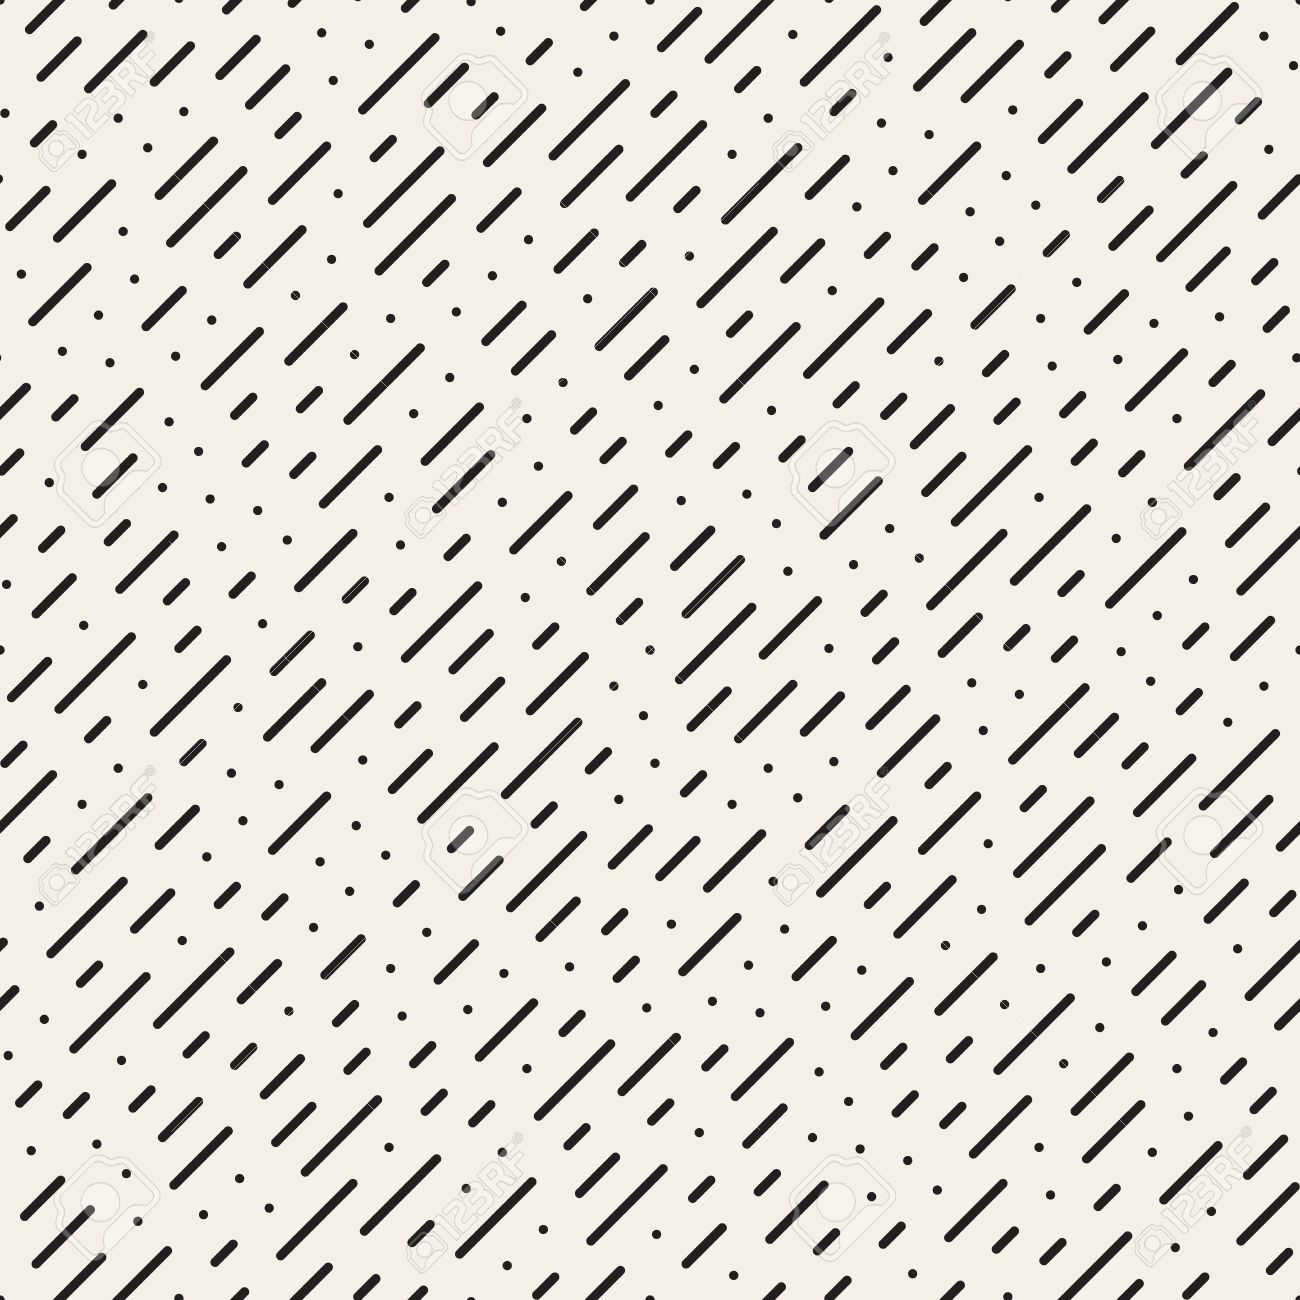 seamless black and white diagonal dashed lines rain pattern abstract